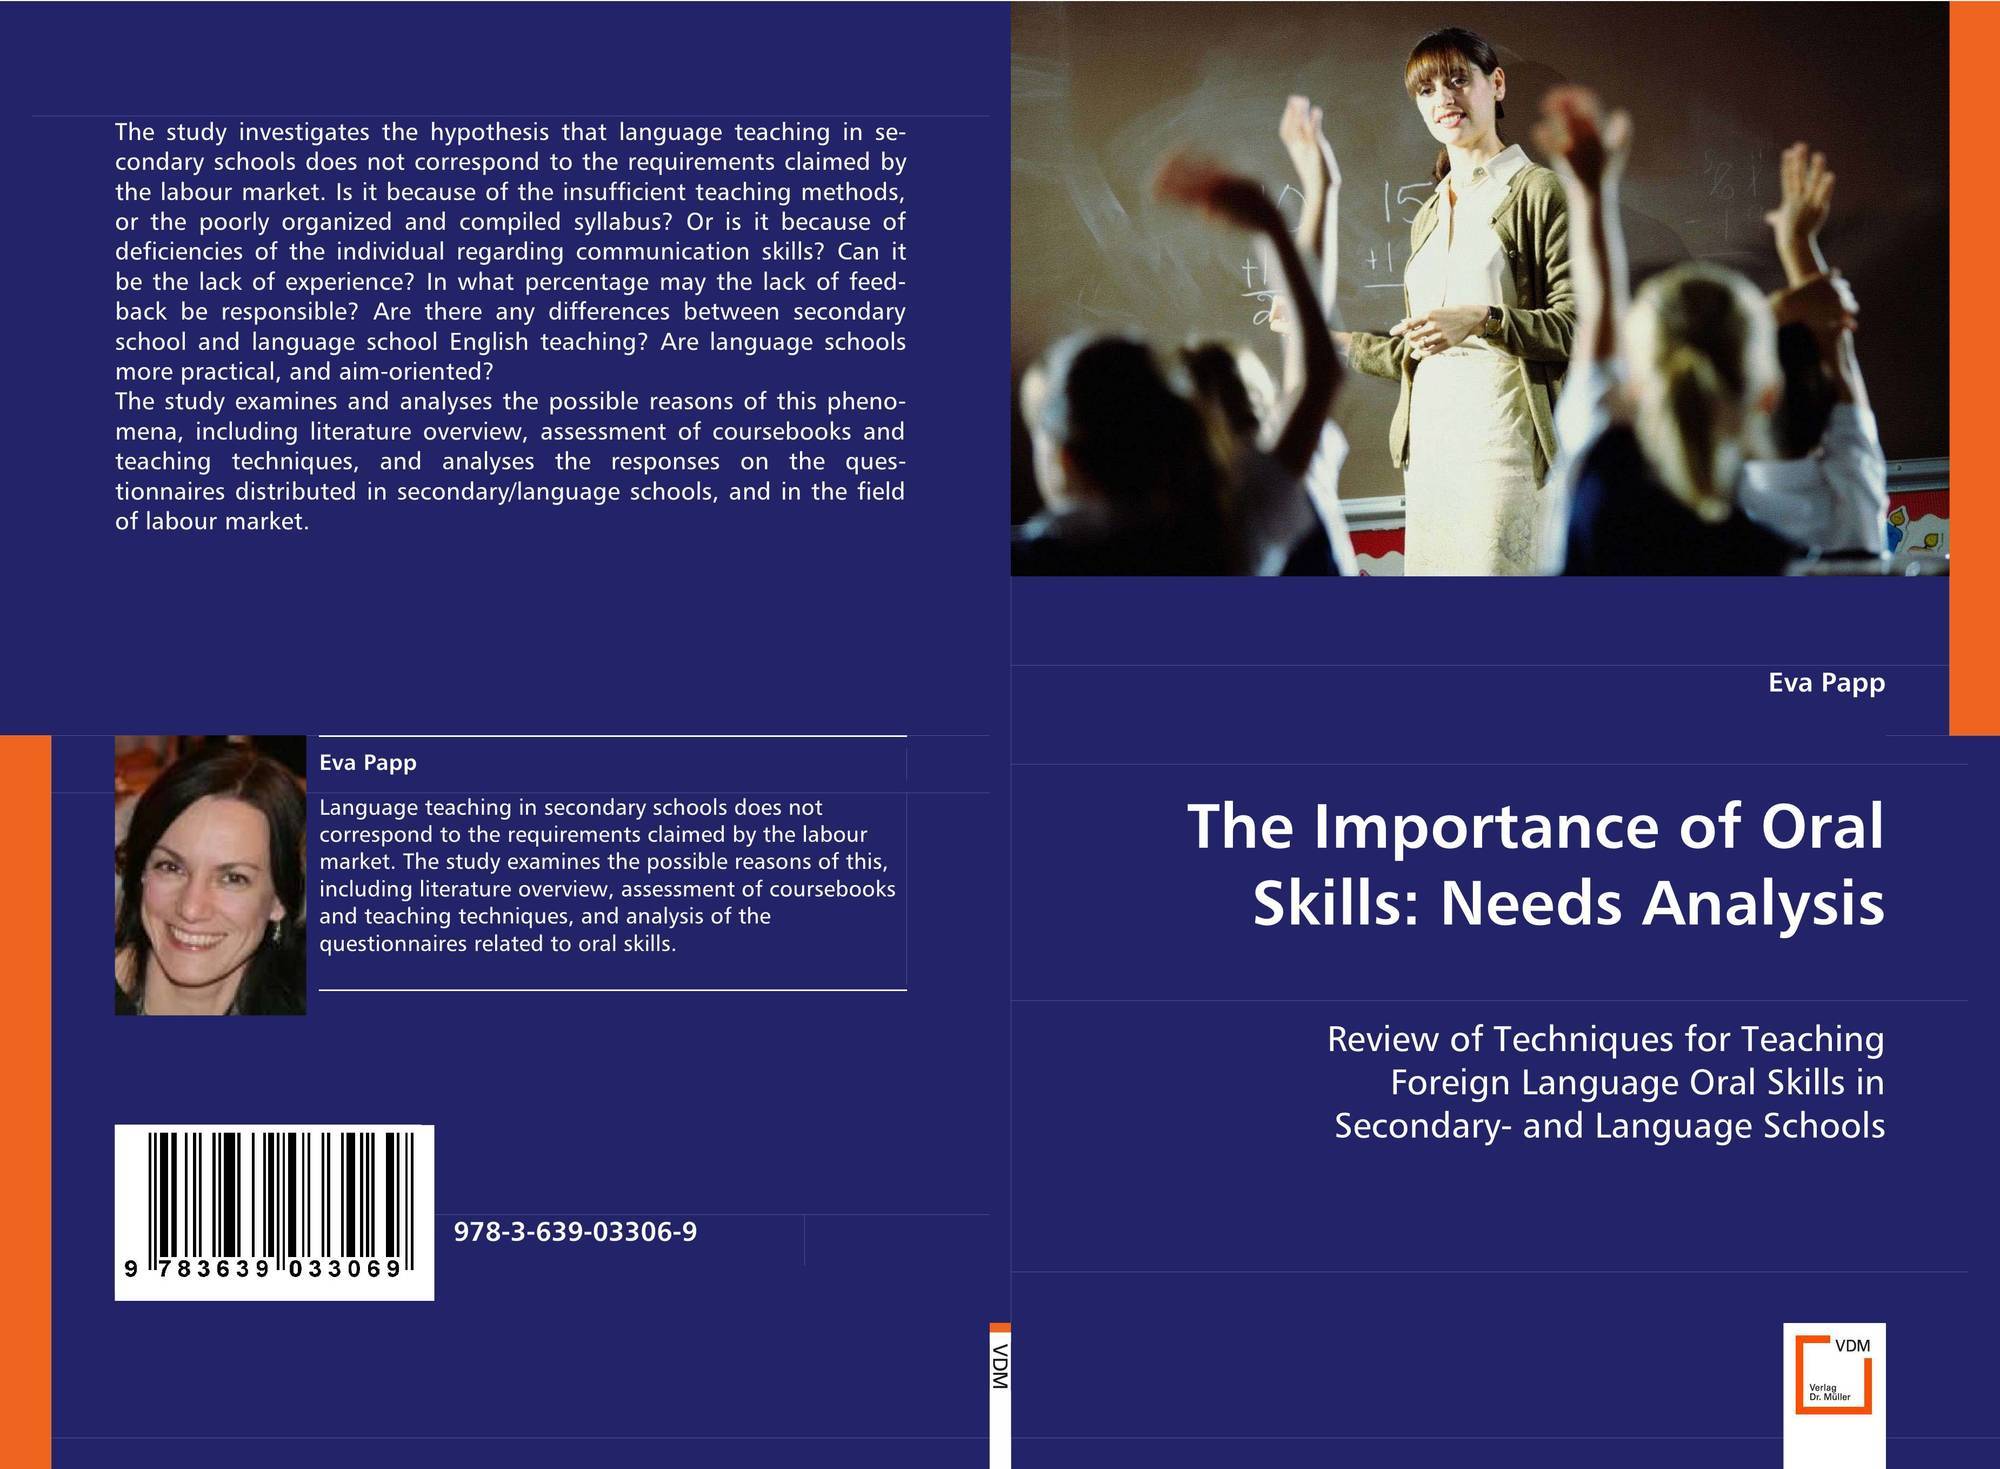 an analysis of the skills of oral communication as something of a phenomenon The communicative act taking place in an oral interaction is so complex that we cannot restrict its analysis to language features only (hyland, 2005, p 25): different levels of meaning and interpretation imply multi- functionality, and that cannot be regarded as a mere linguistic phenomenon.